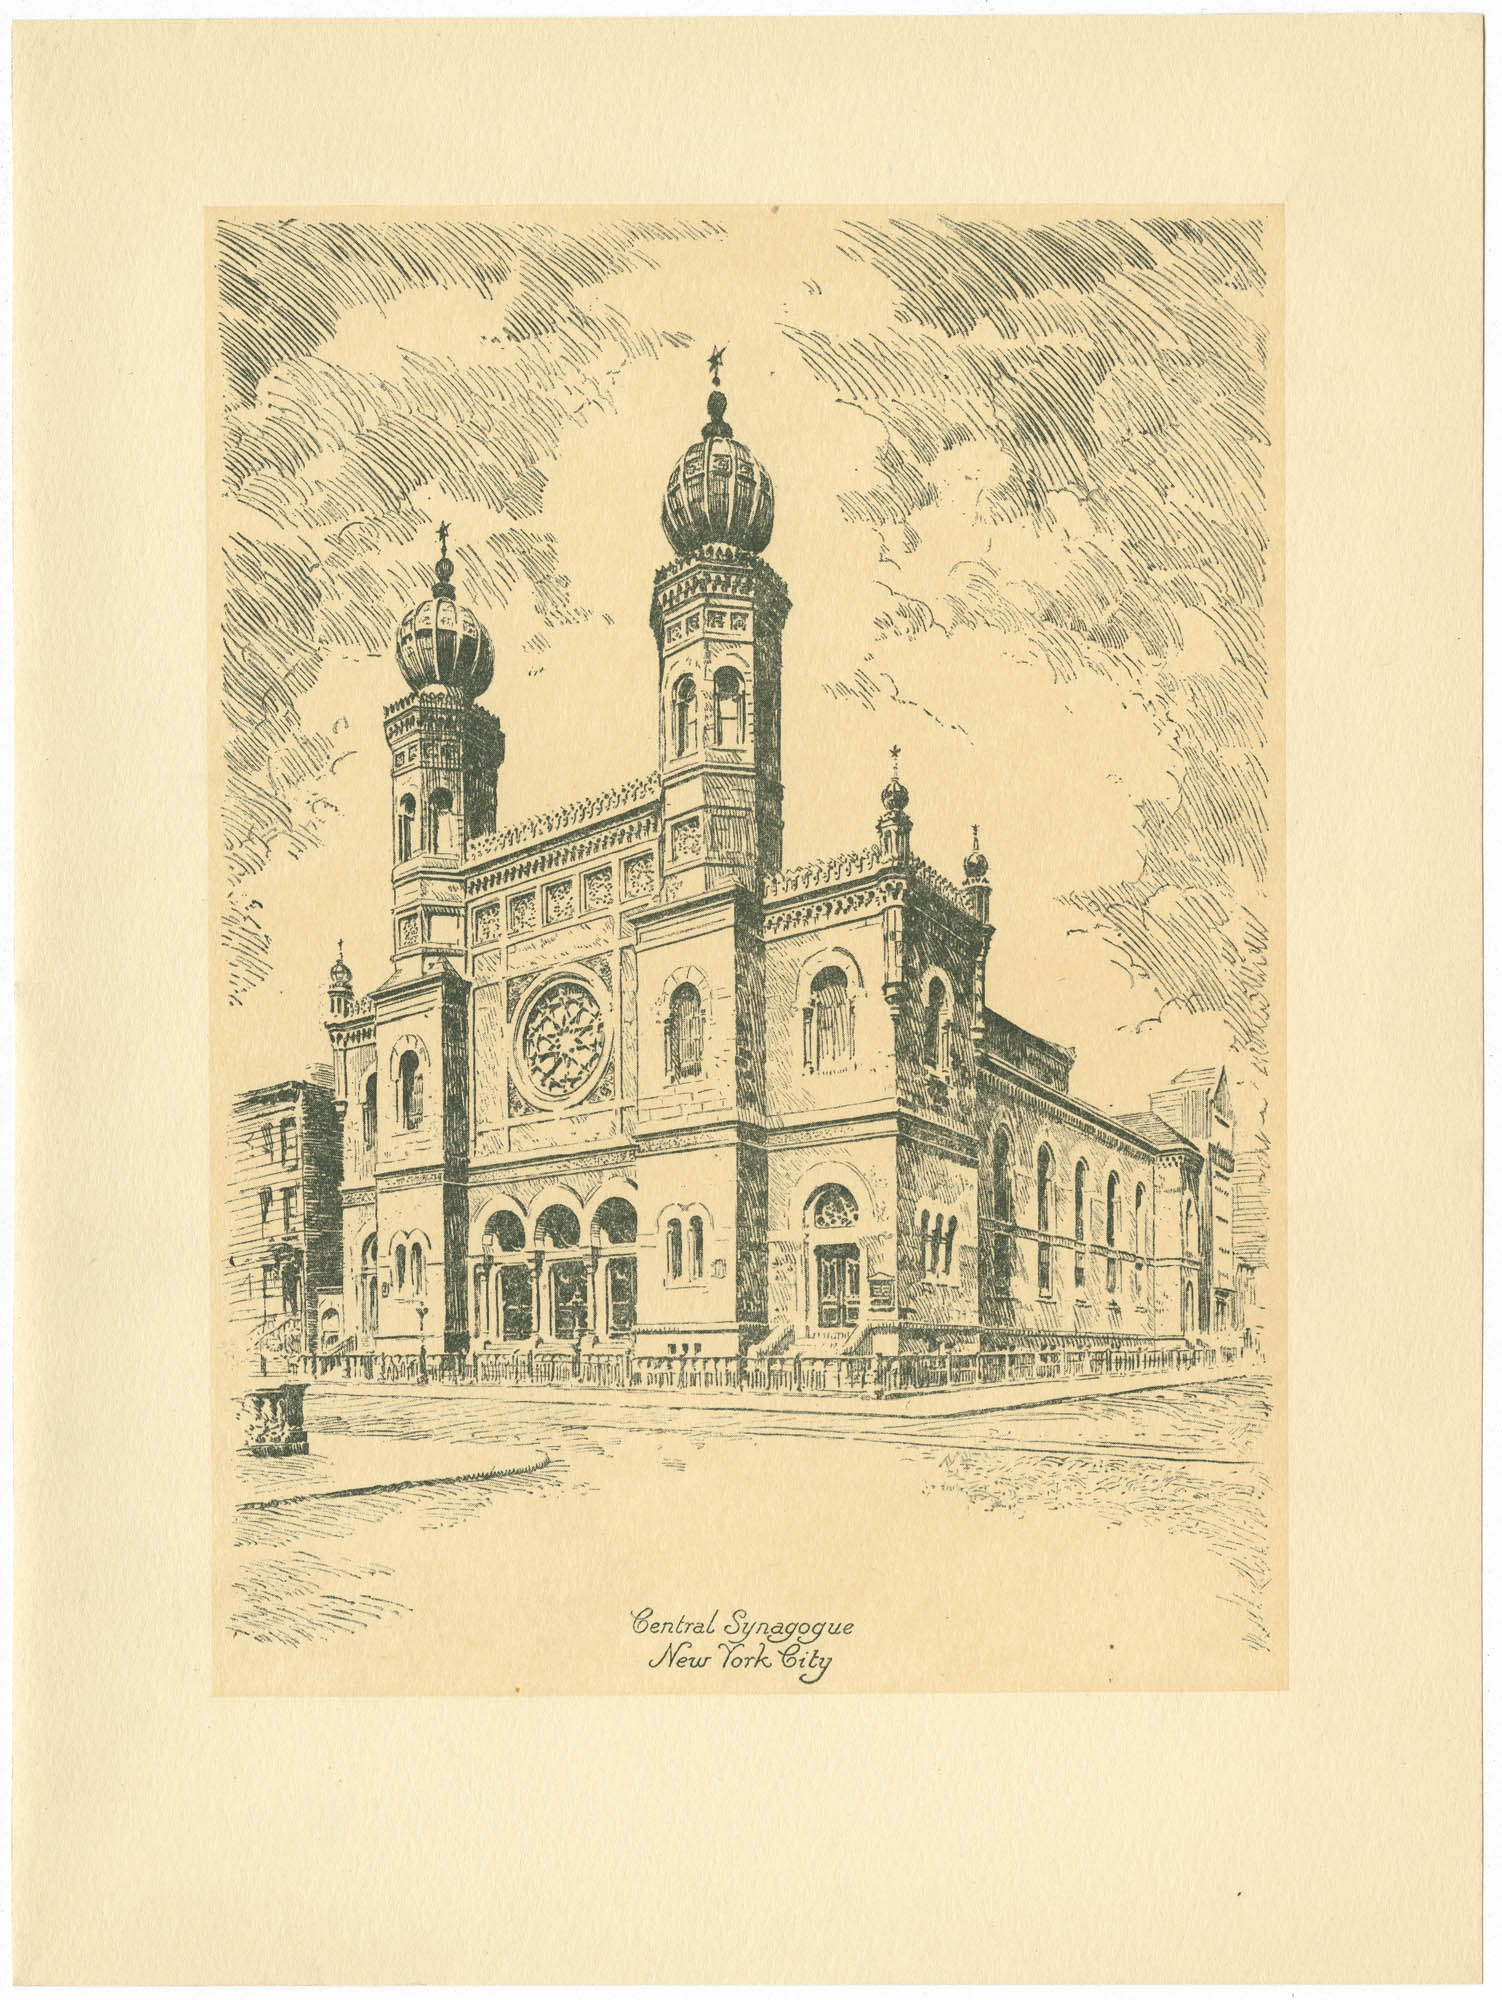 Central Synagogue, New York City